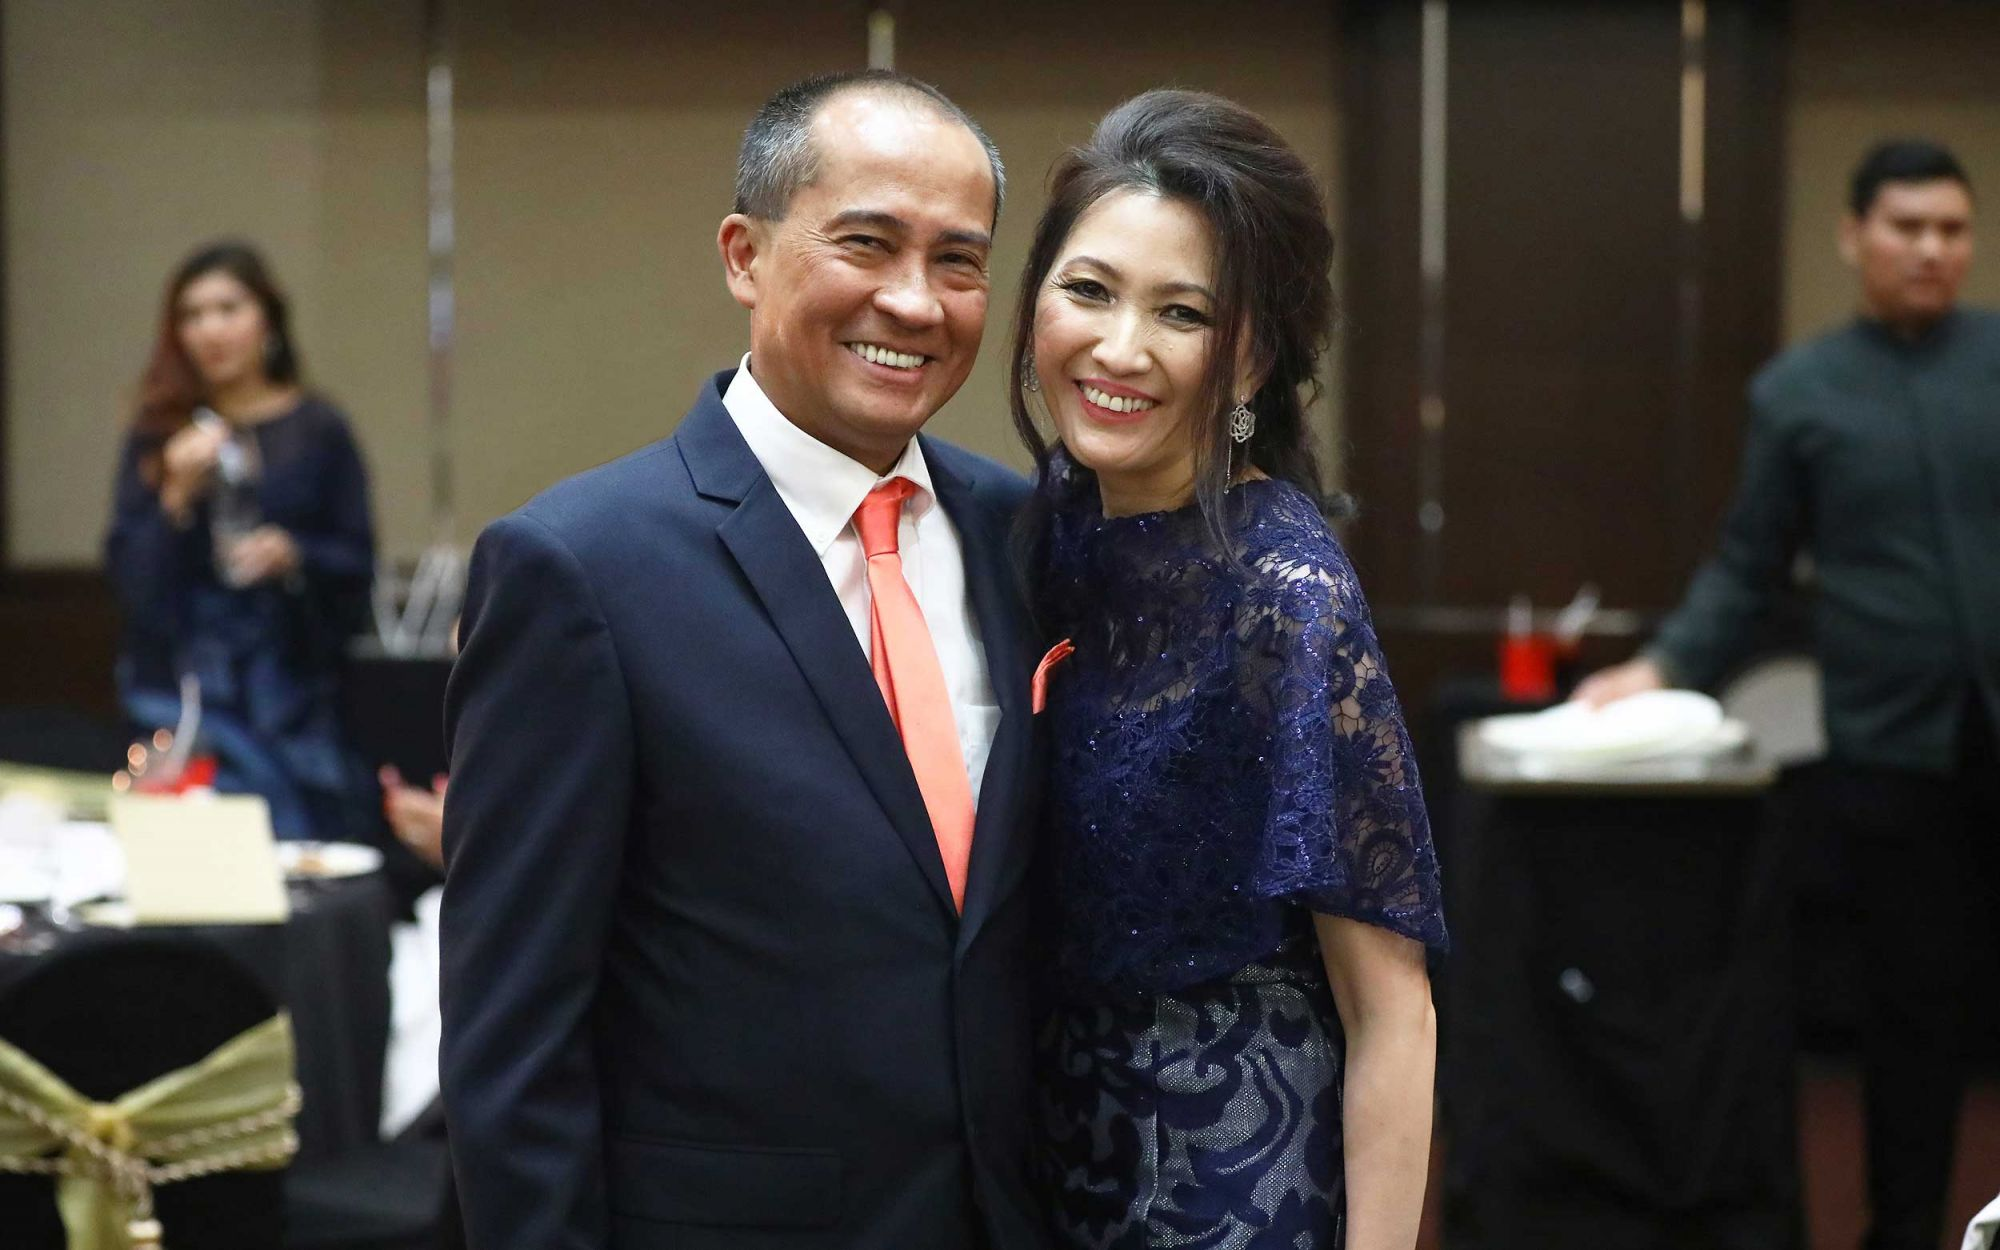 Dato' Dr Anuar Onah and Datin Dr Norazlin Mokhtar